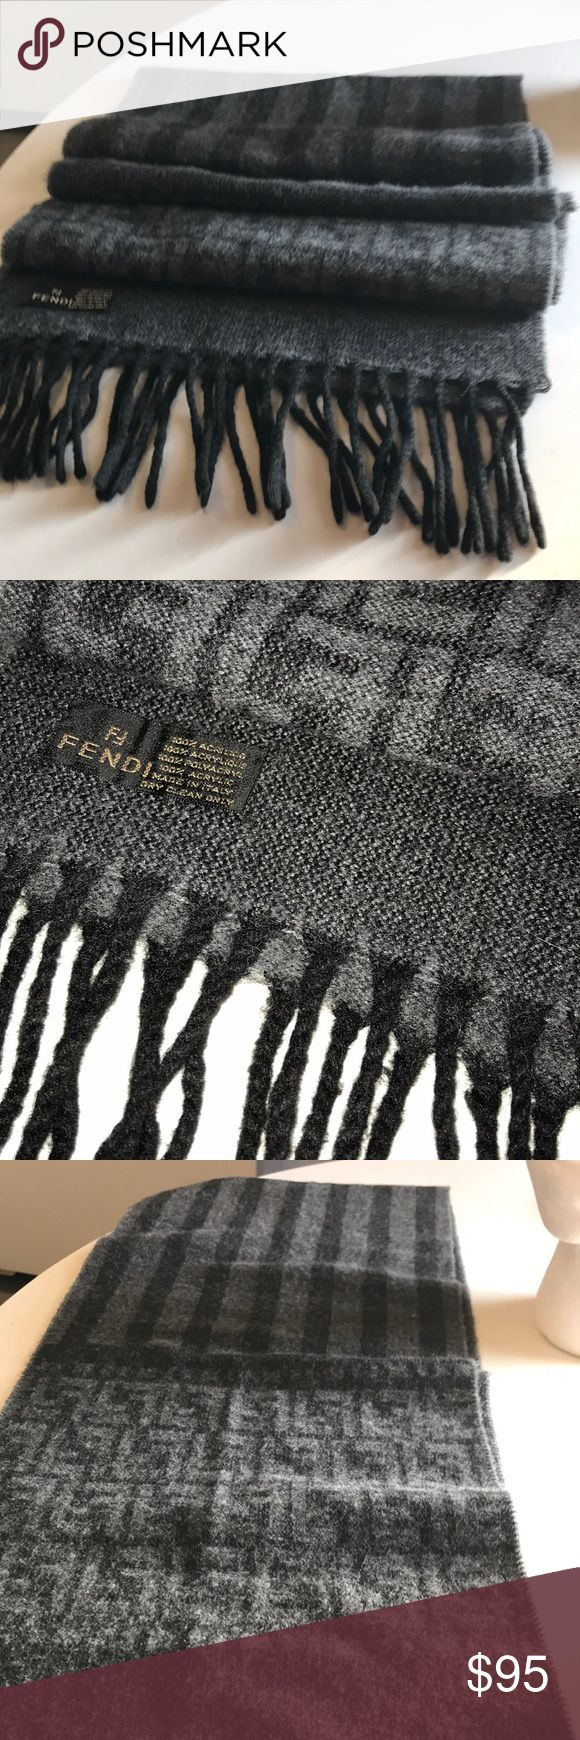 Fendi scarf Authentic FENDI monogrammed & stripped & fringed long scarf . Super cute Fendi Accessories Scarves & Wraps